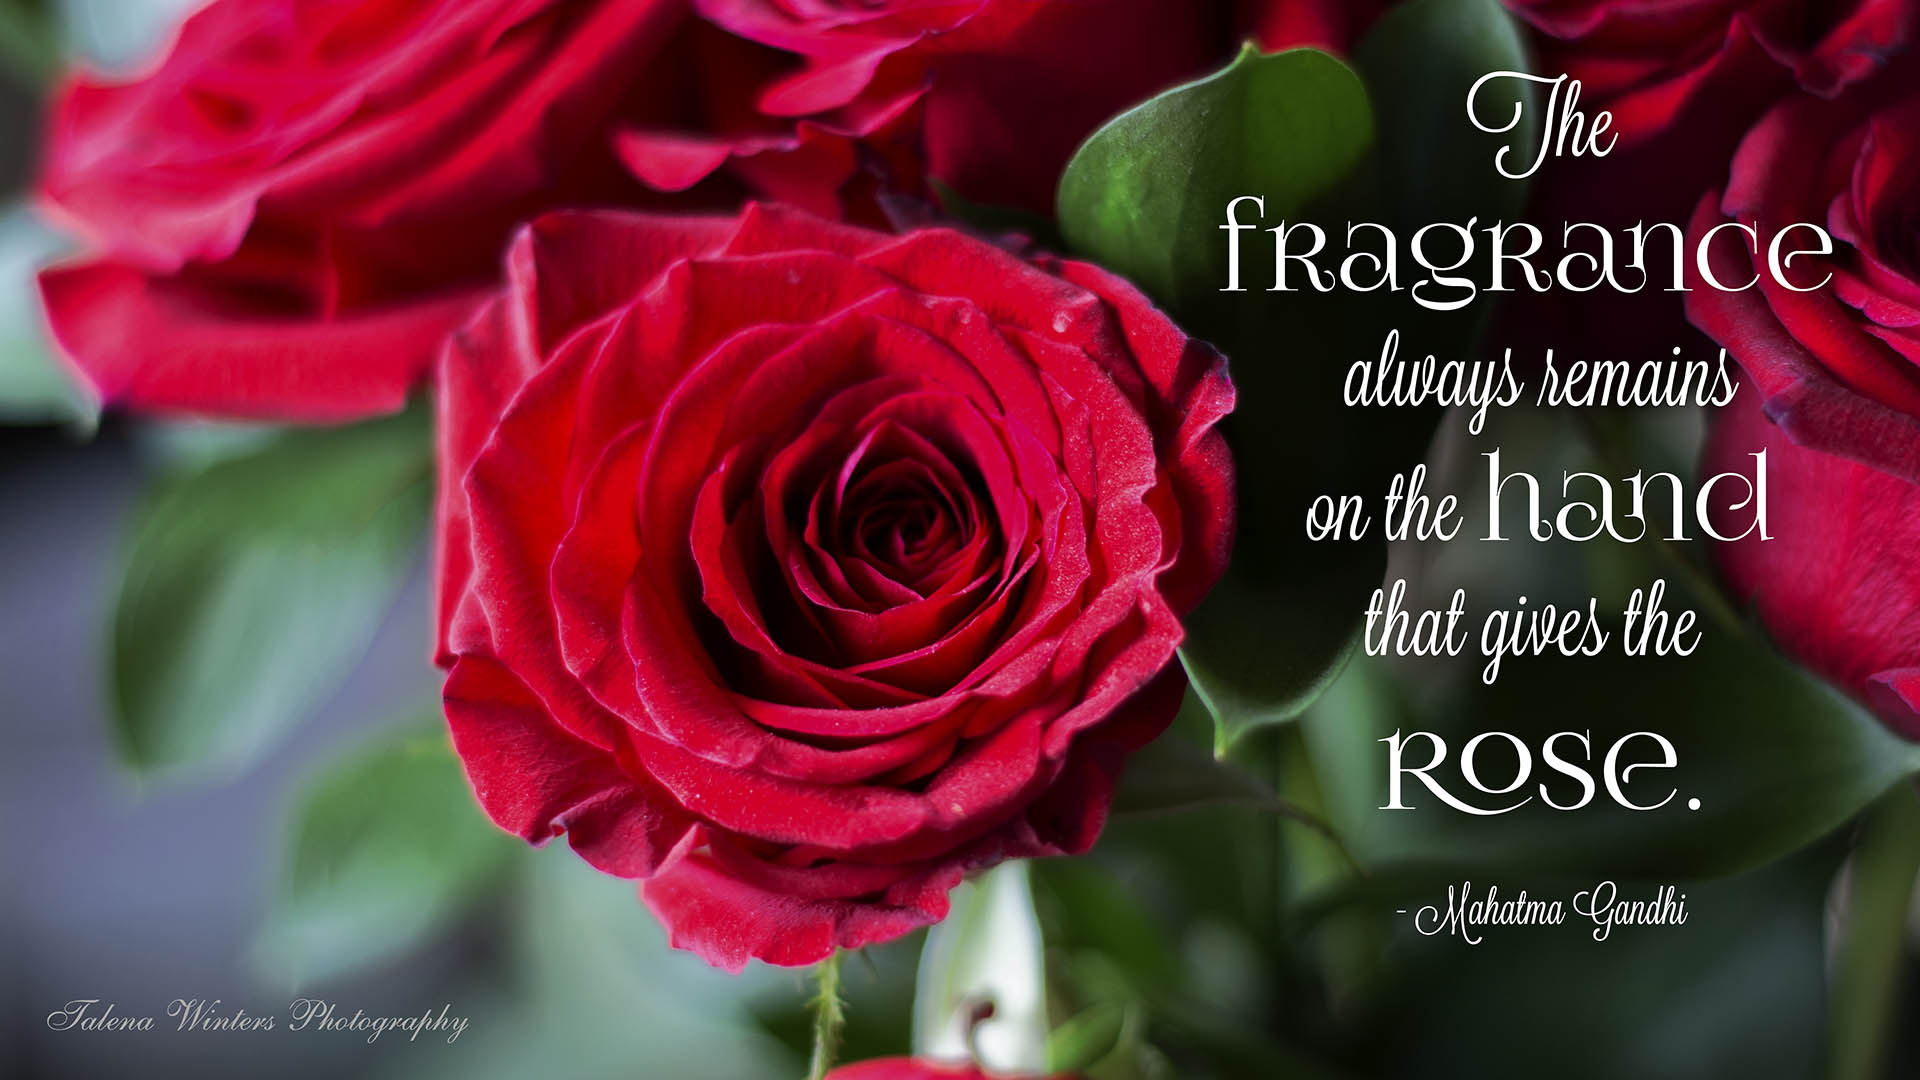 """The fragrance always remains on the hand that gives the rose."" Wallpaper by Talena Winters. www.talenawinters.com"